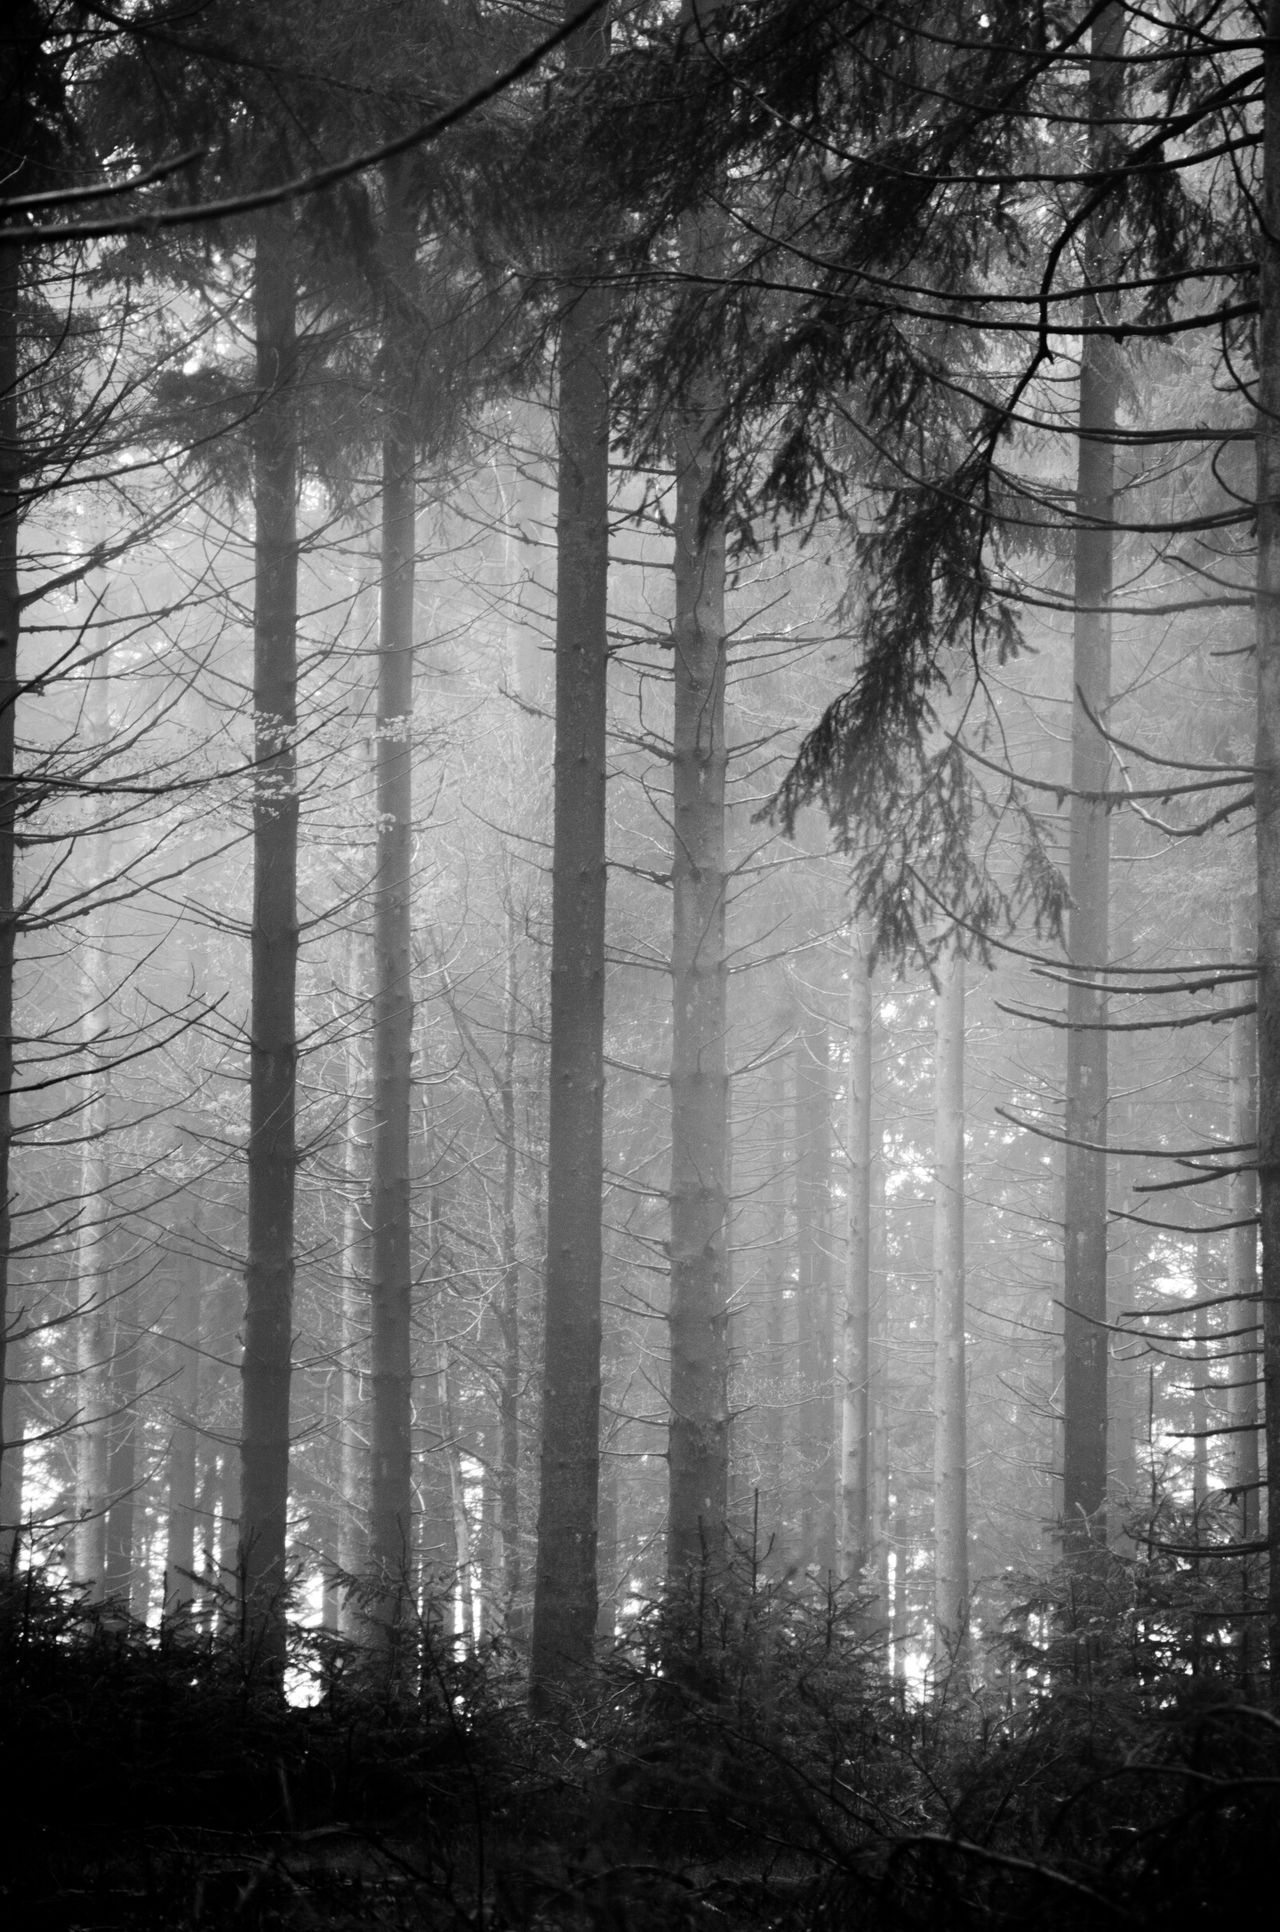 Landscape Blackandwhite Fog Forest Nature Trees Light Morvan Taking Photos Getting Inspired